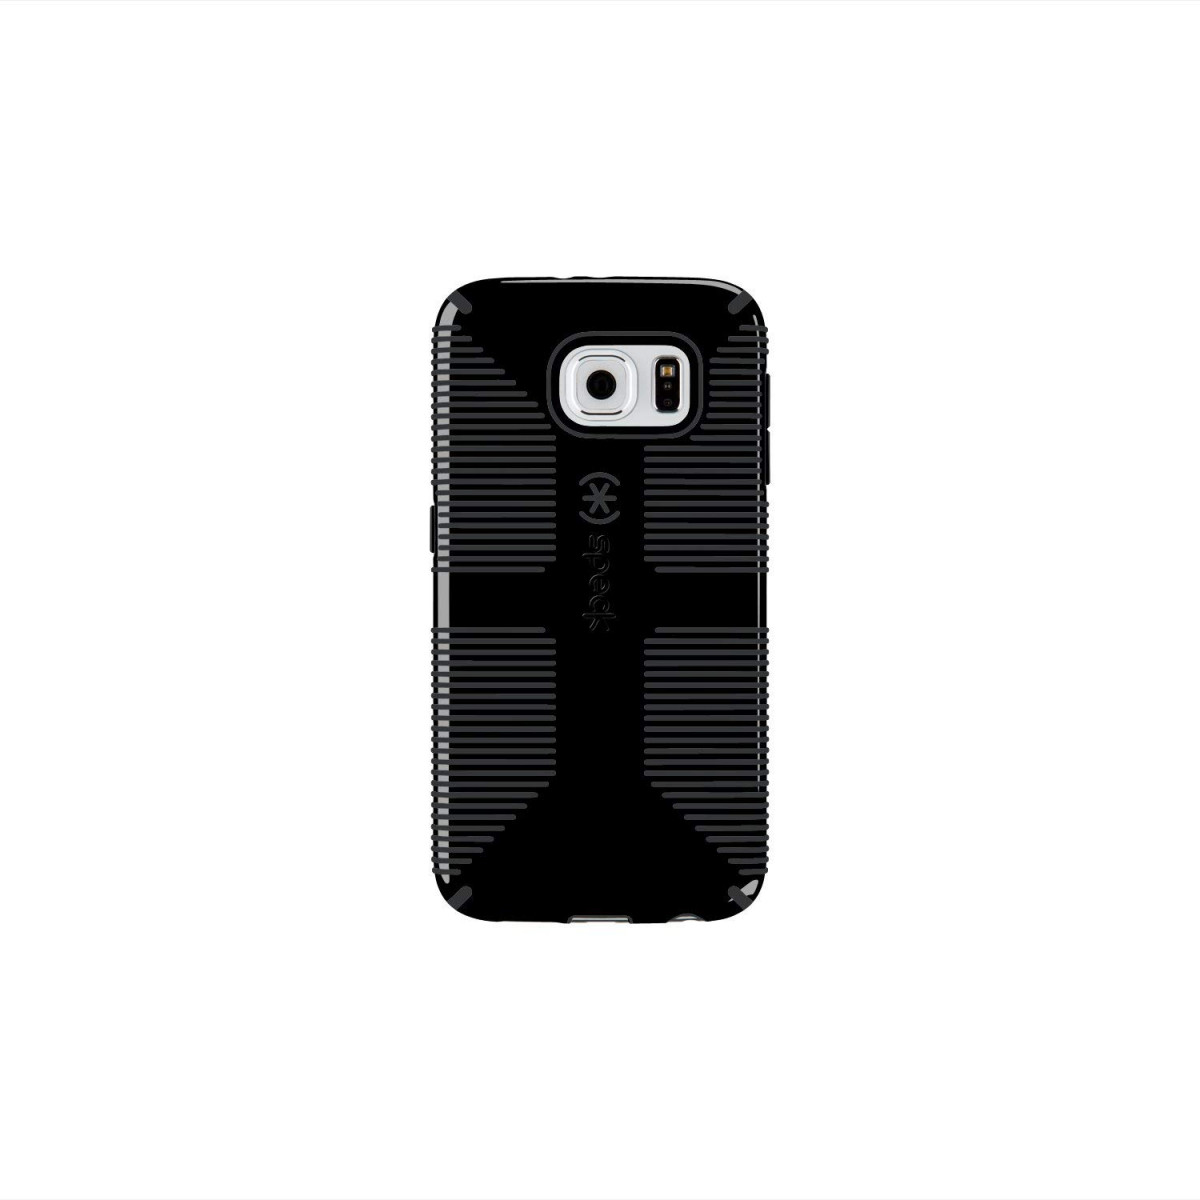 new product e35d1 71014 Speck Products CandyShell Grip Case for Samsung Galaxy S6 - Retail  Packaging - Black/Slate Grey